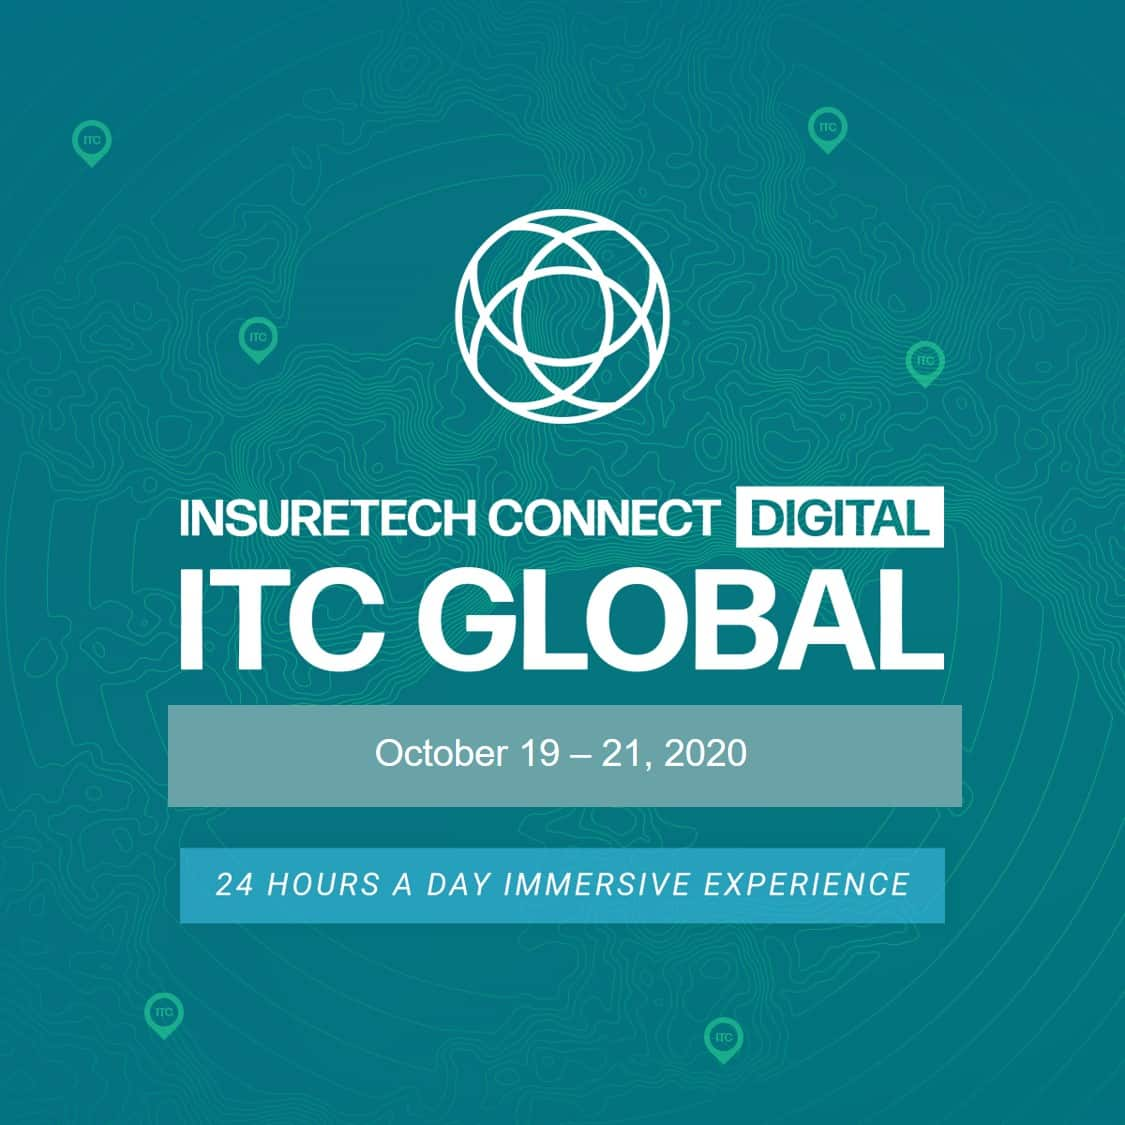 InsureTech Connect Digital ITC Global 2020